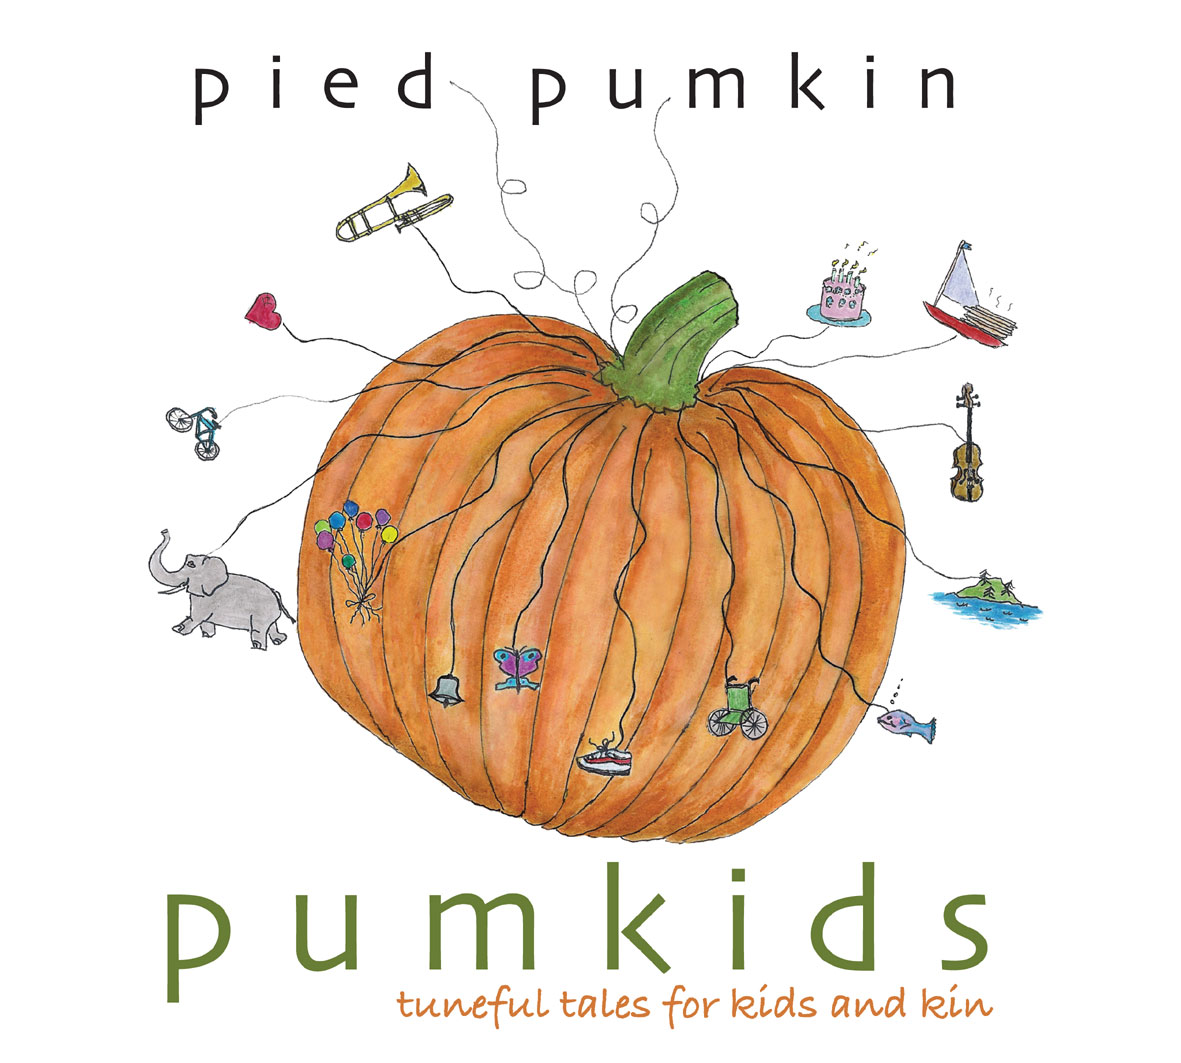 pumkids cd cover